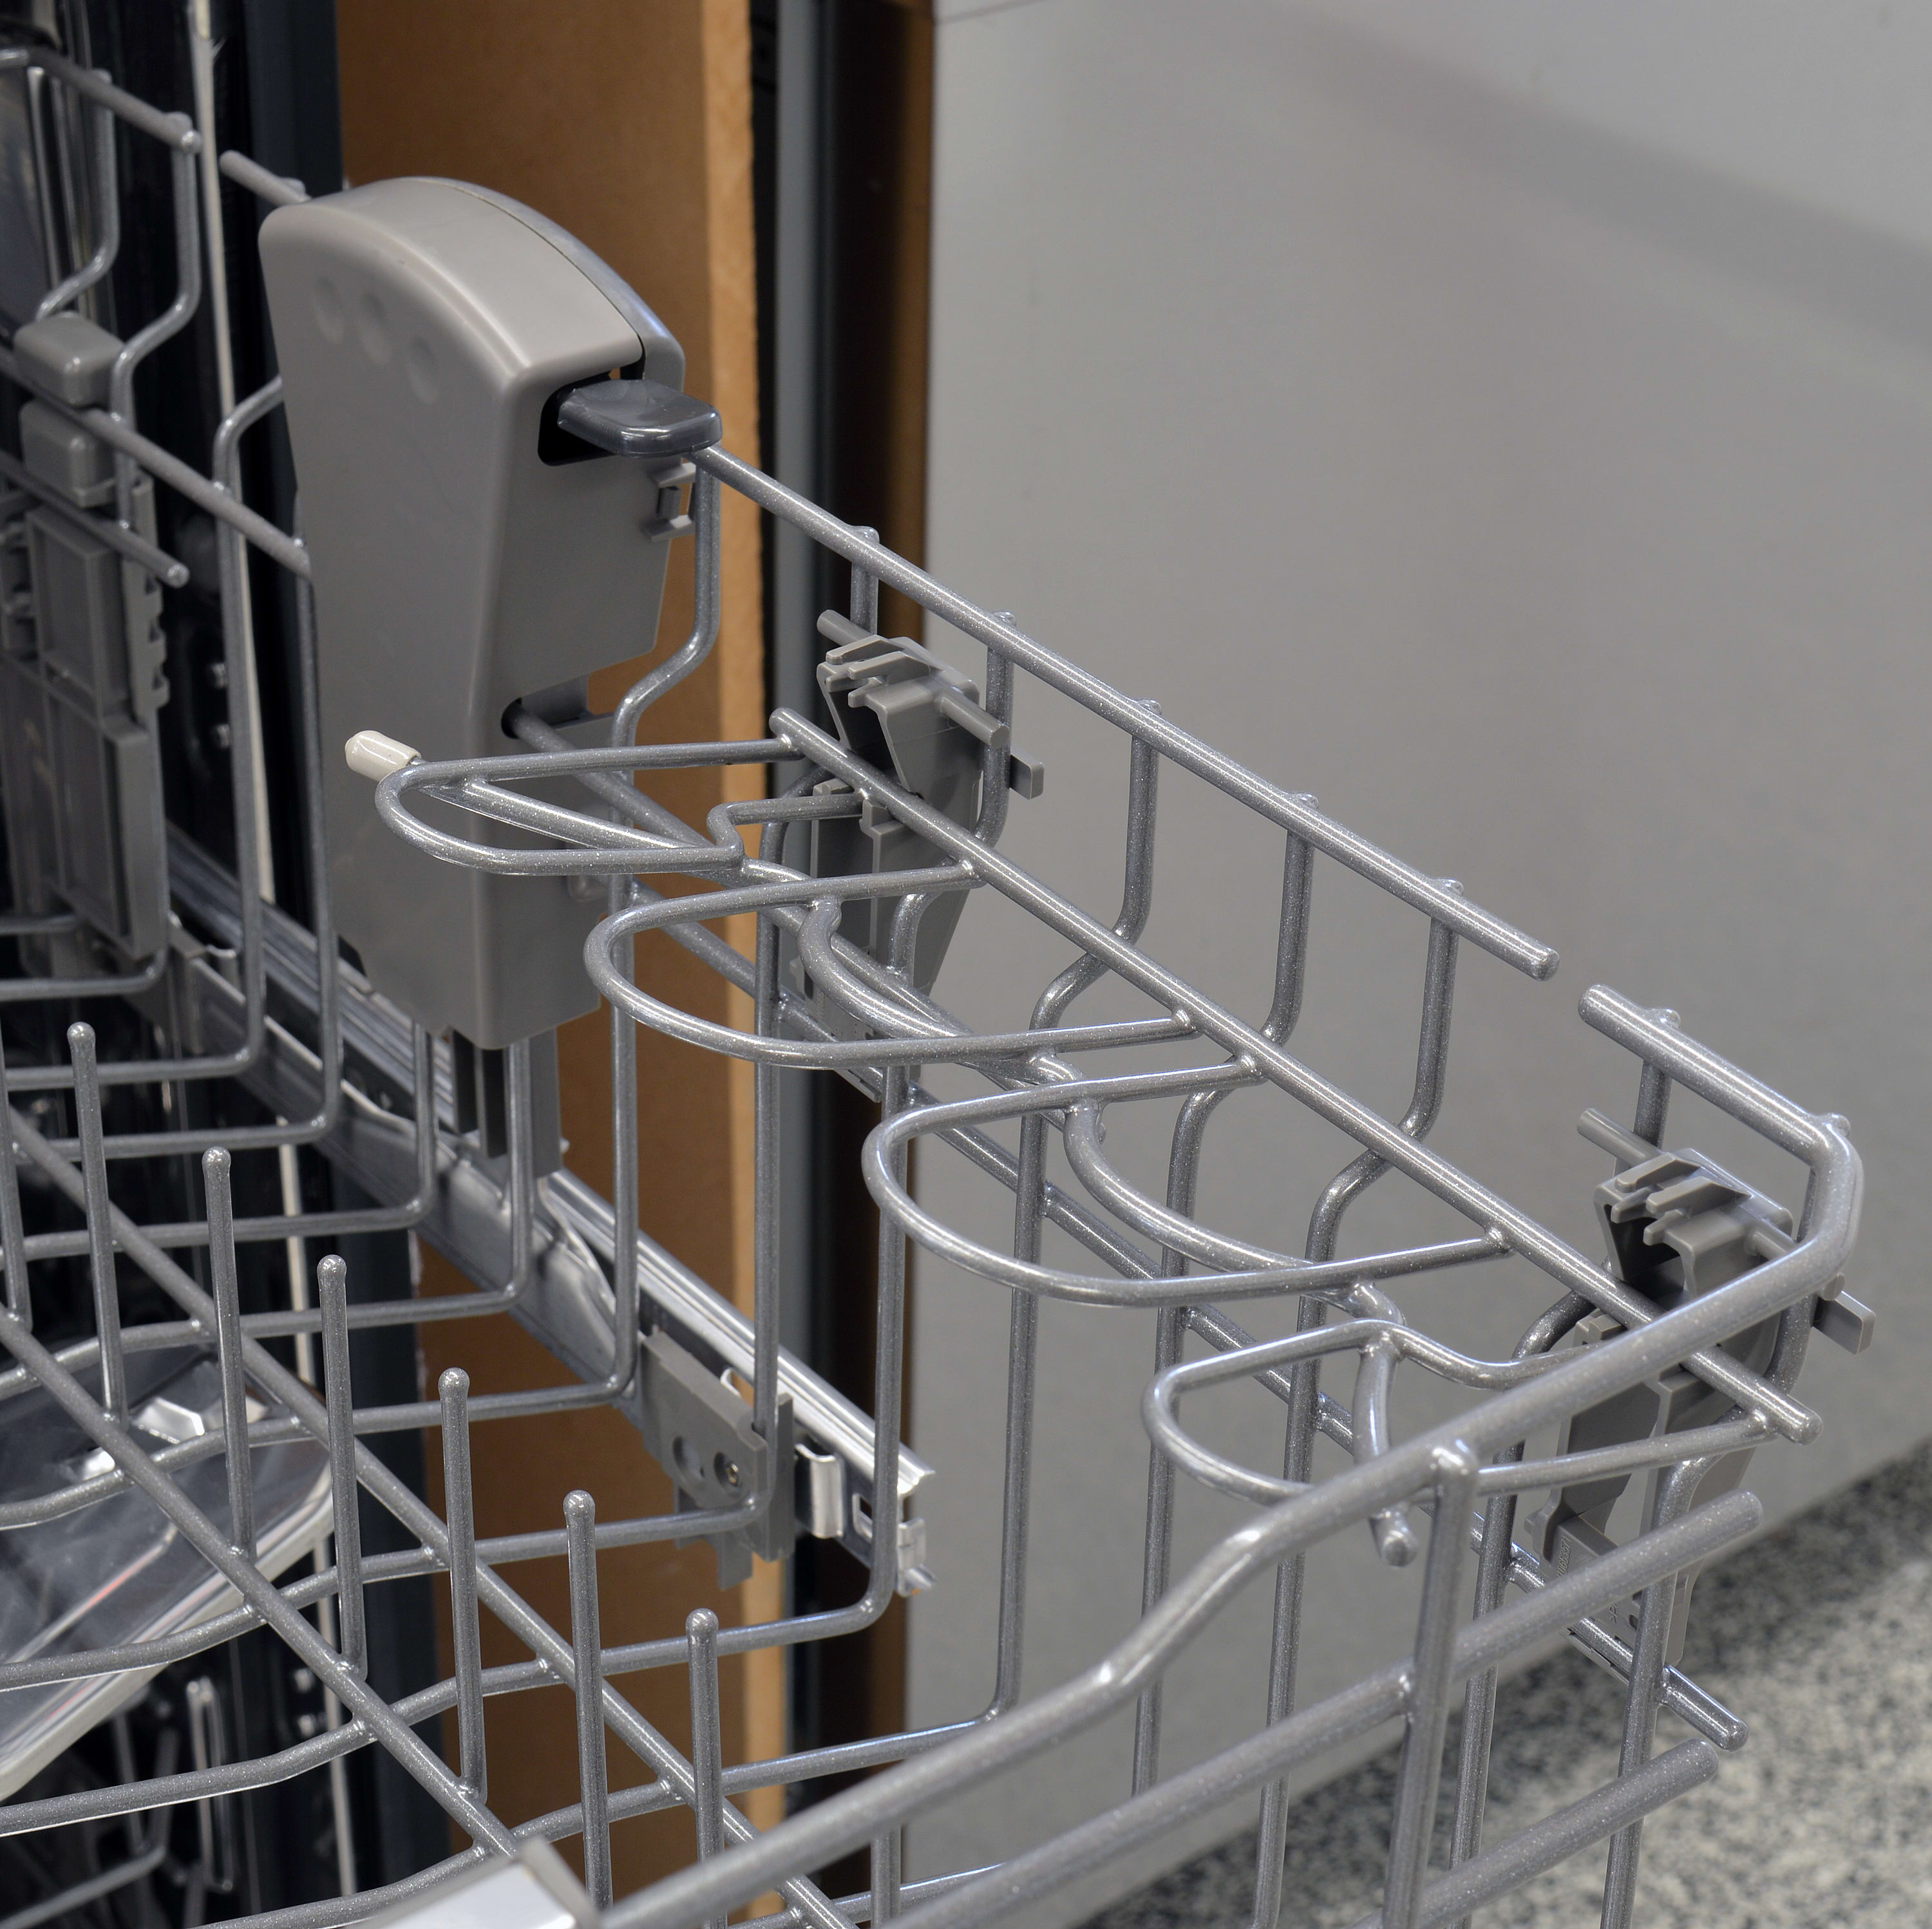 Maytag MDB8969SDM top rack with height adjustment and cup shelf